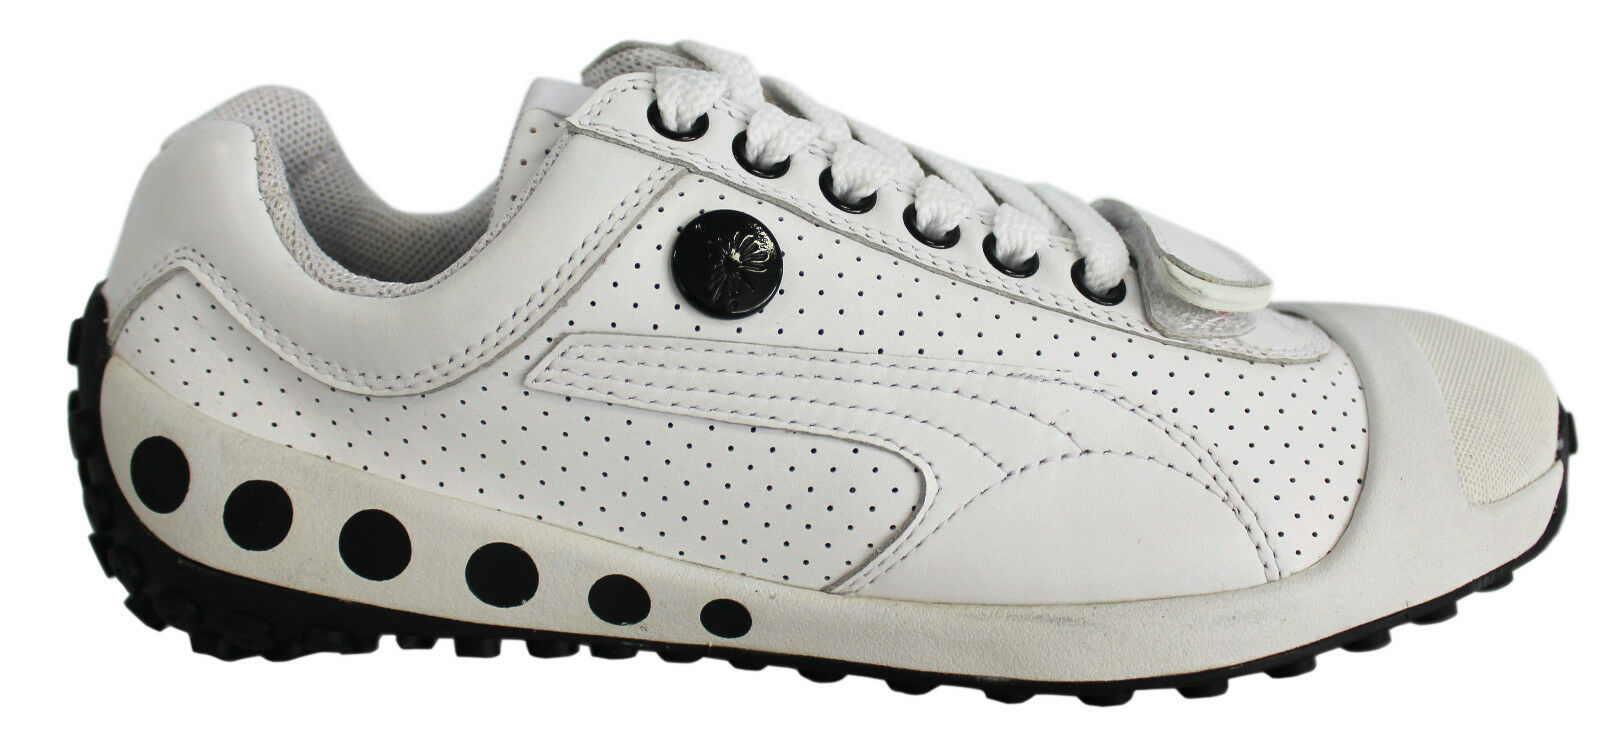 Puma Mihara Yasuhiro My 53 hommes Trainers blanc Leather Lace Up 352055 03 D34